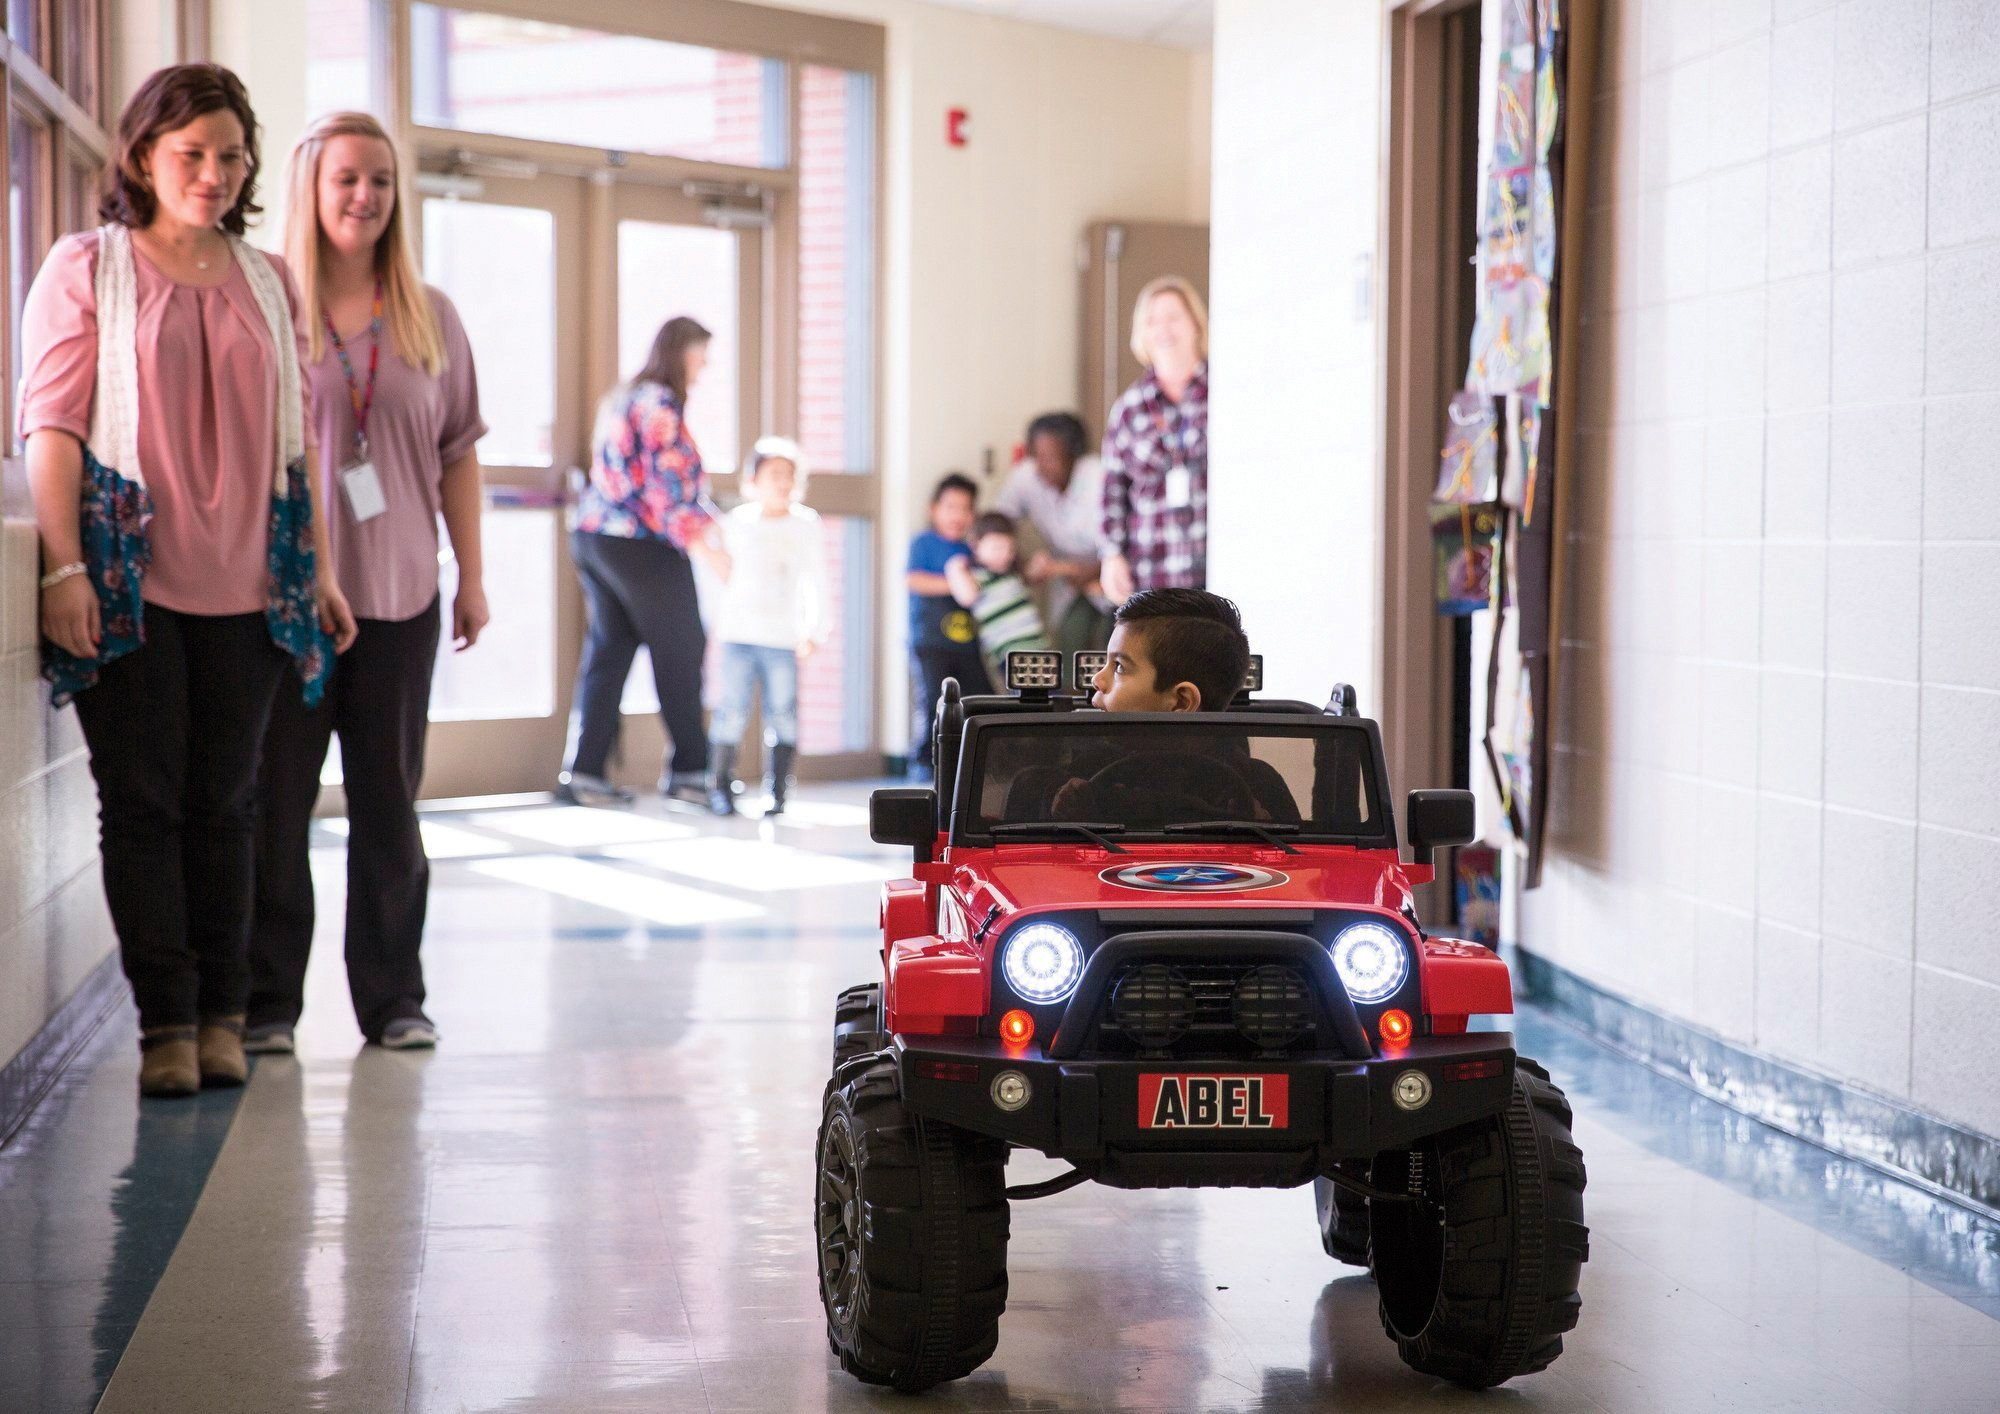 Abel Salazar, 4, drives a battery-operated Jeep in the halls of Dudley Elementary School, while his therapists and classmates watch. Photo: Angela Piazza, Victoria Advocate